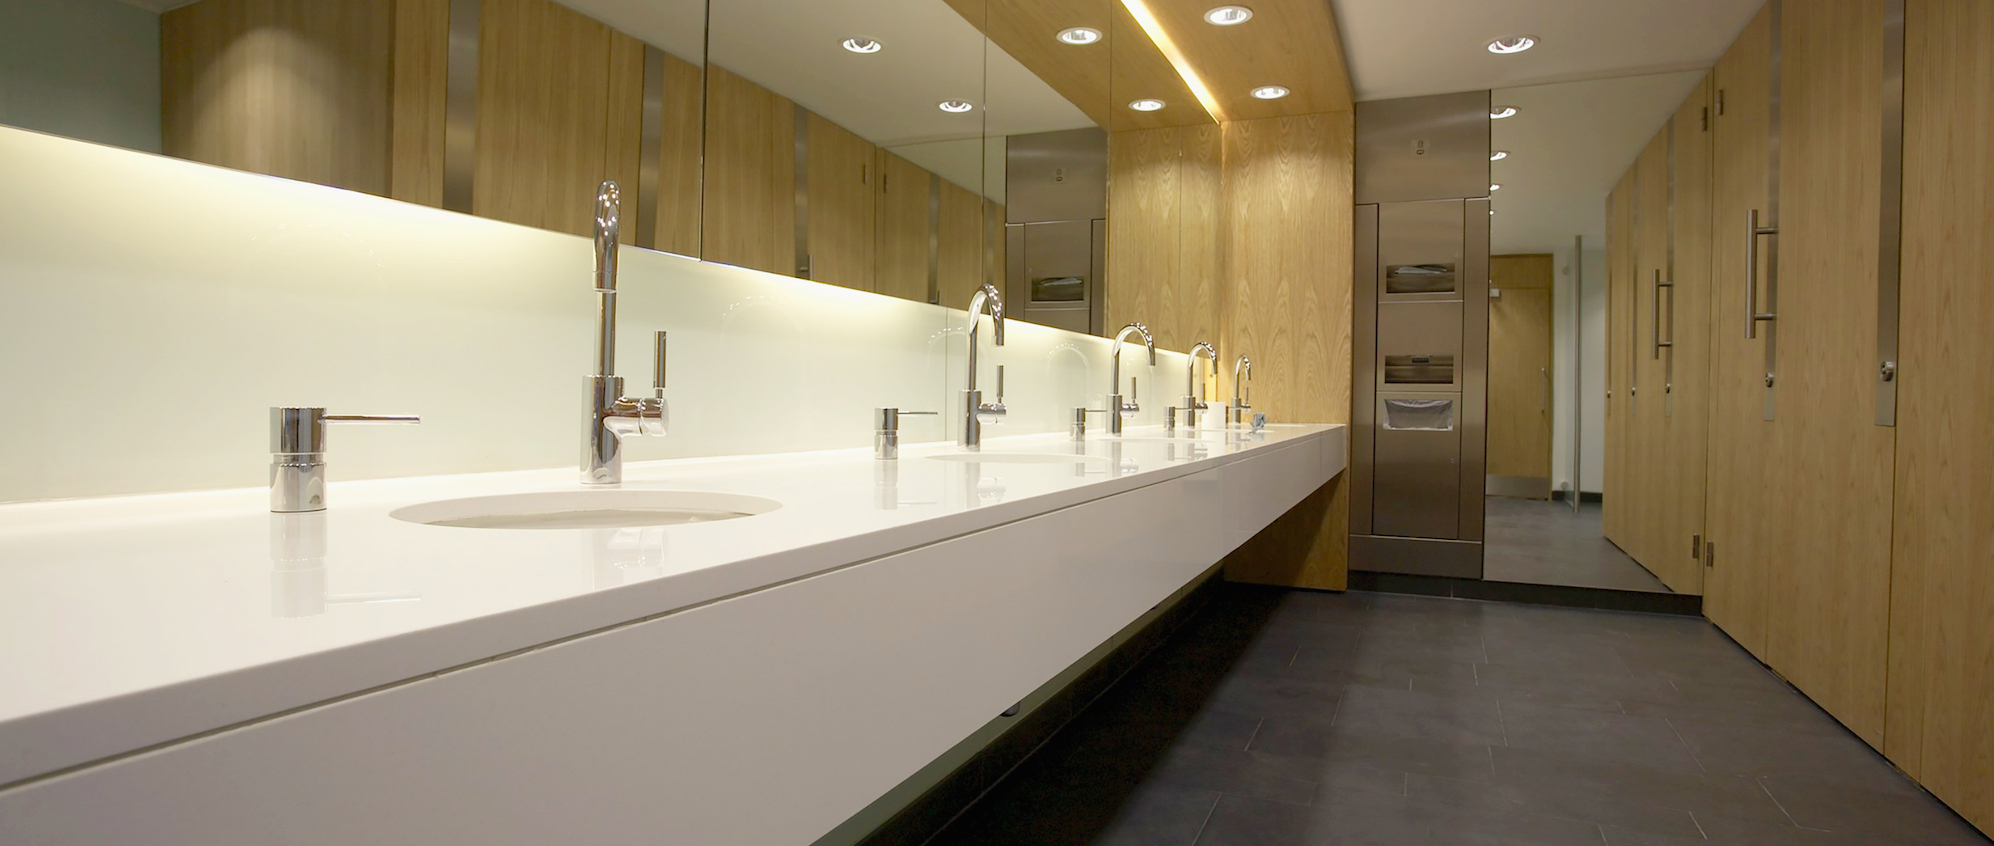 Commercial Bathroom and Washroom Renovations.